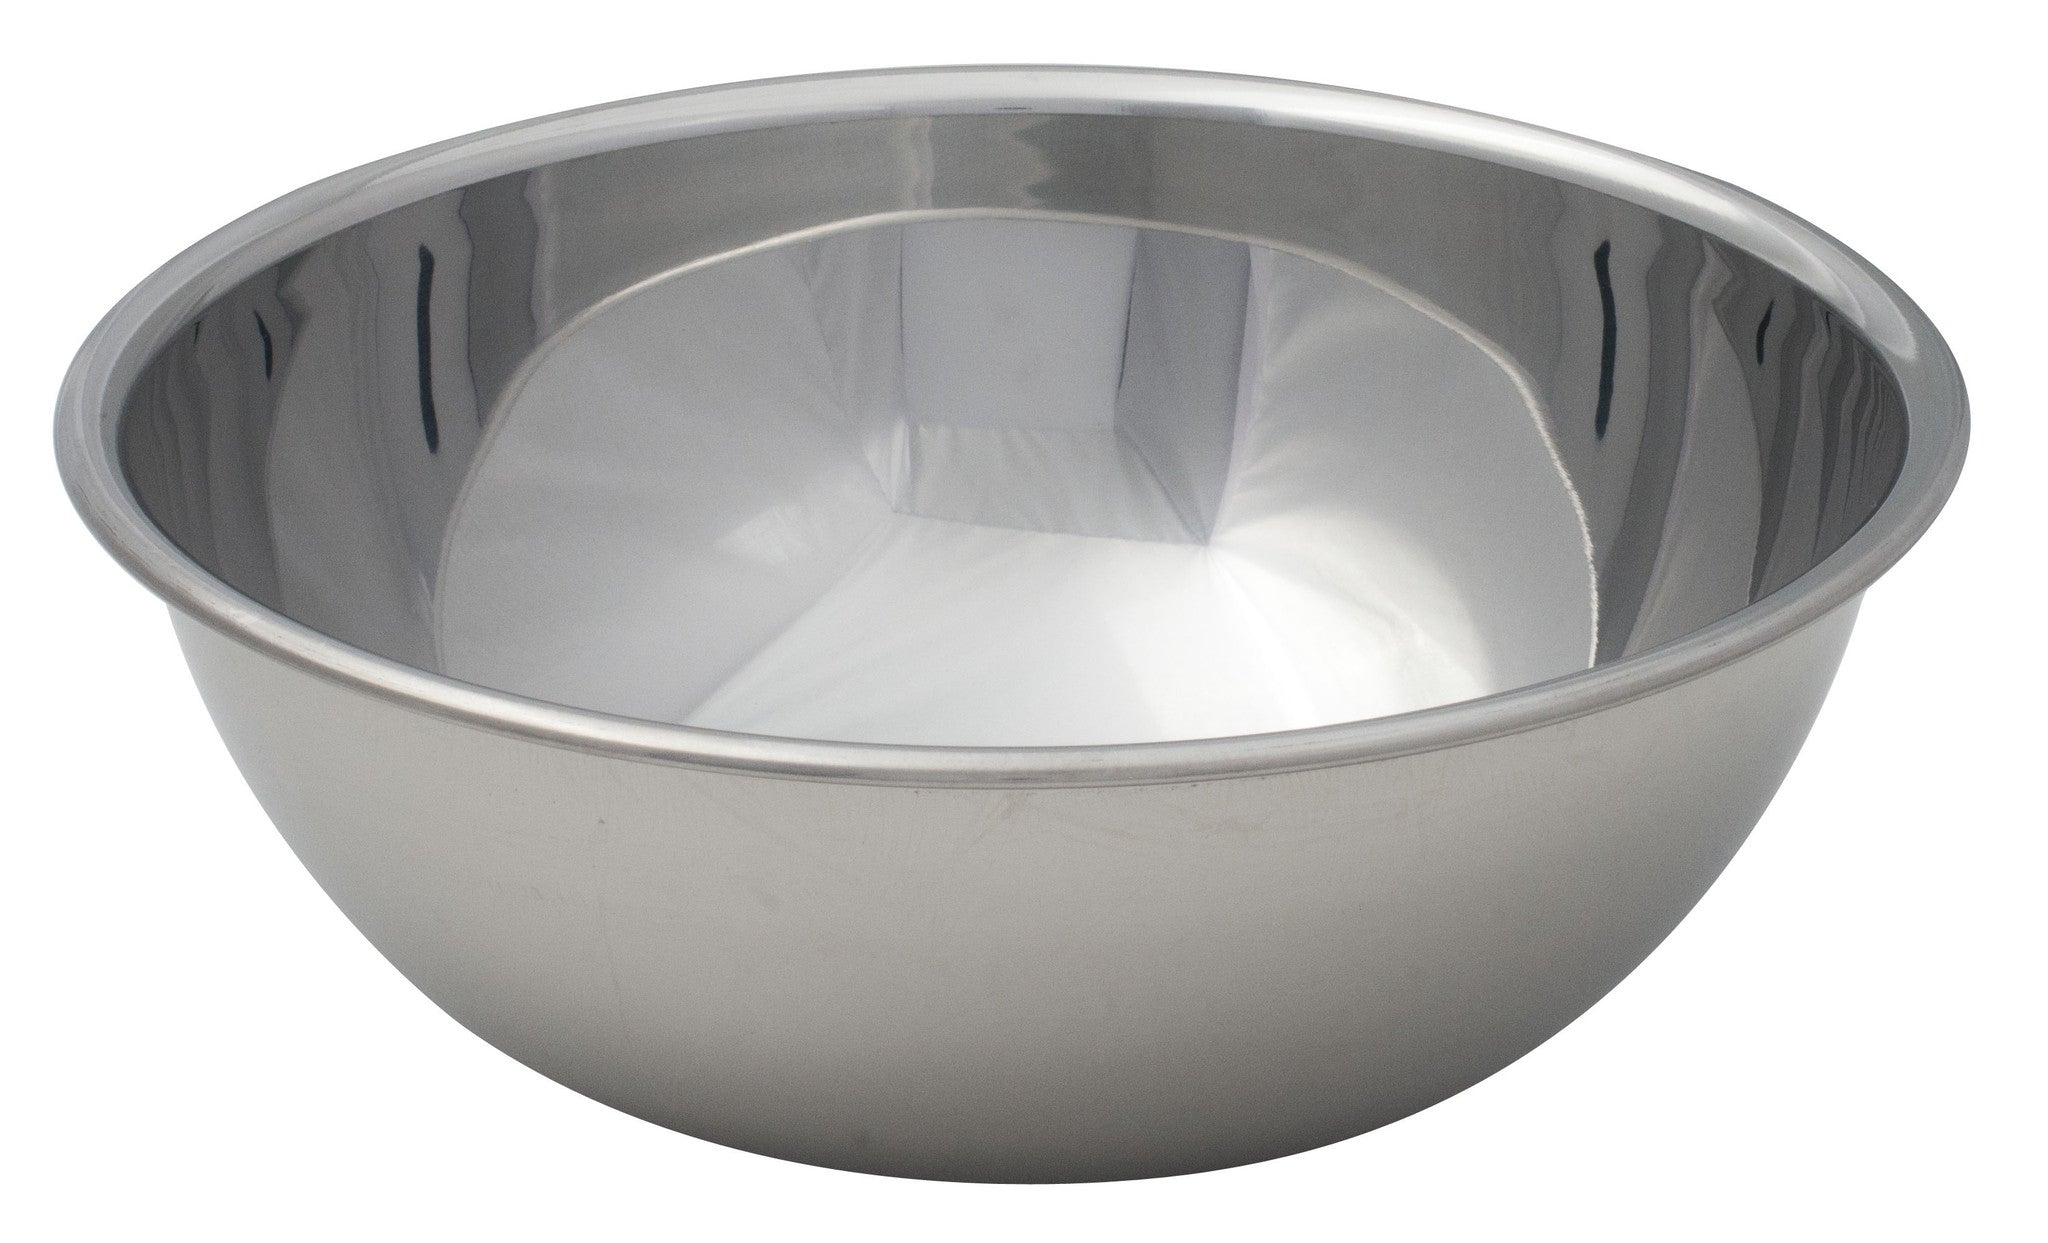 Stainless Steel Mixing Bowl Singapore Pantry Pursuits